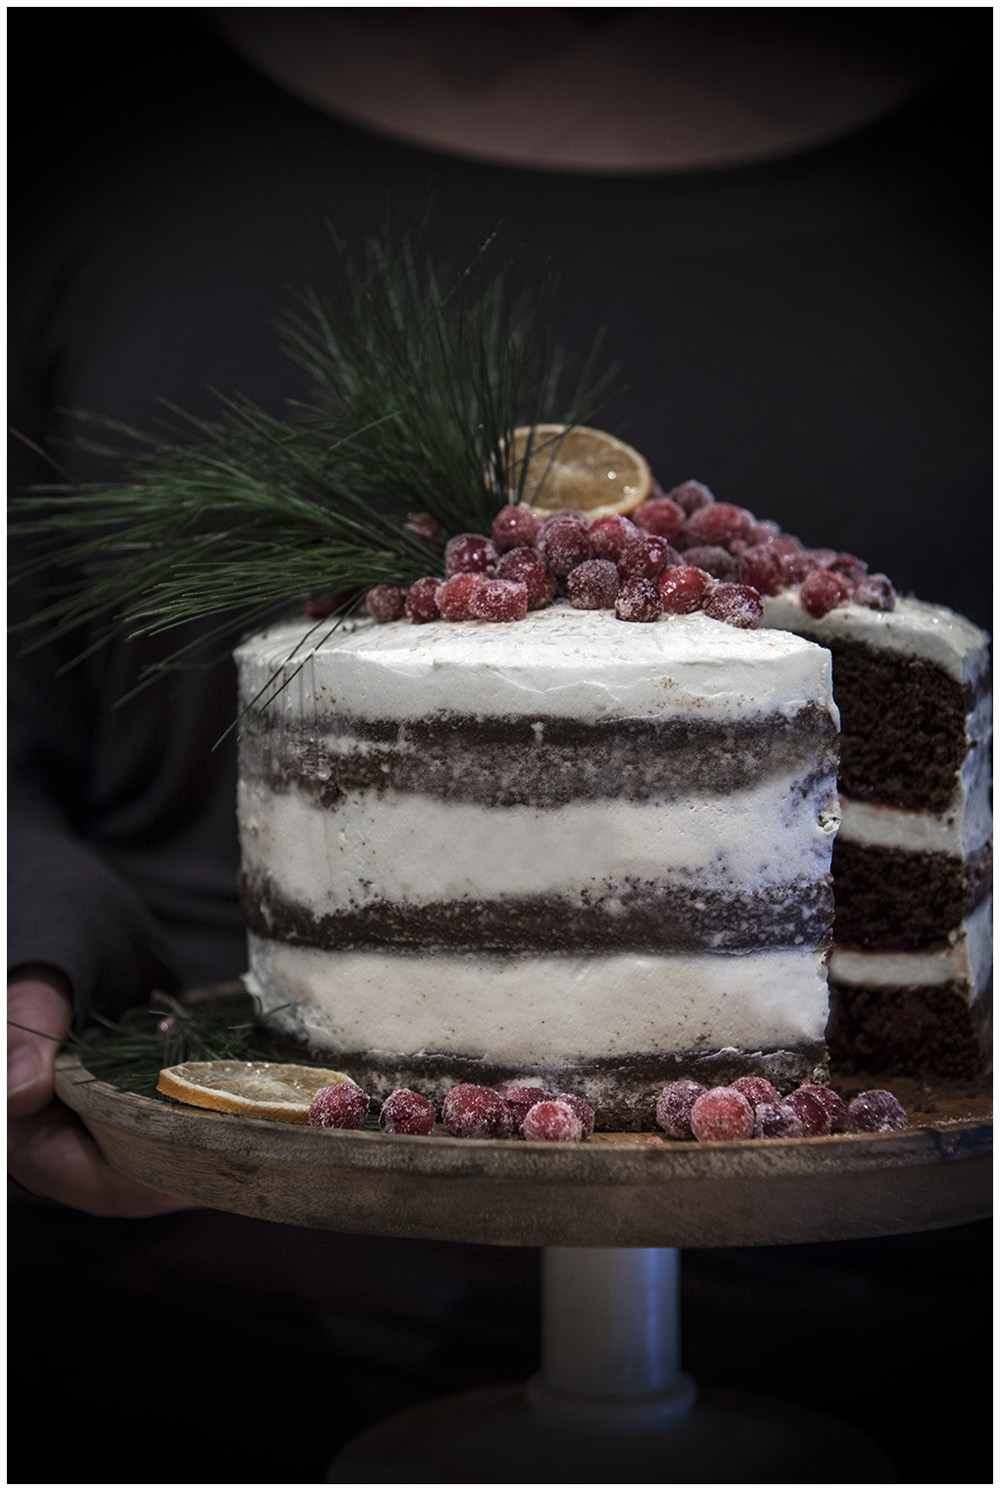 Spiced chocolate & rum cake with cranberries